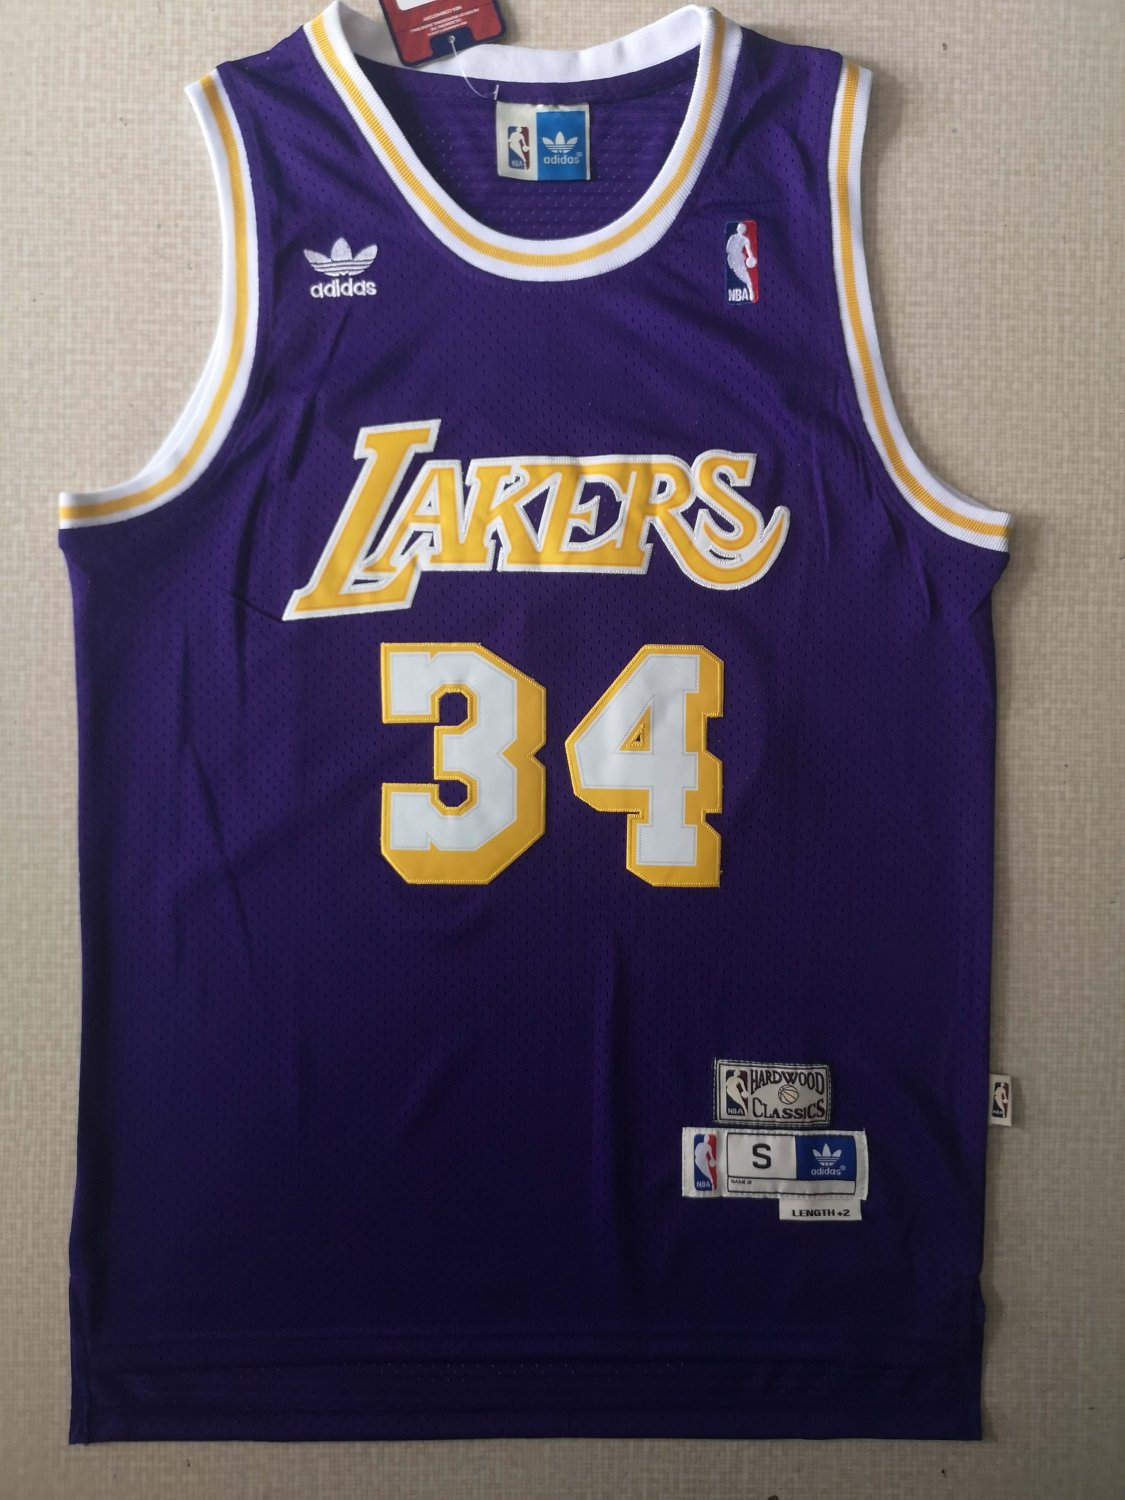 Men's Lakers 34# Shaquille O'Neal Basketball Jersey Purple Throwback